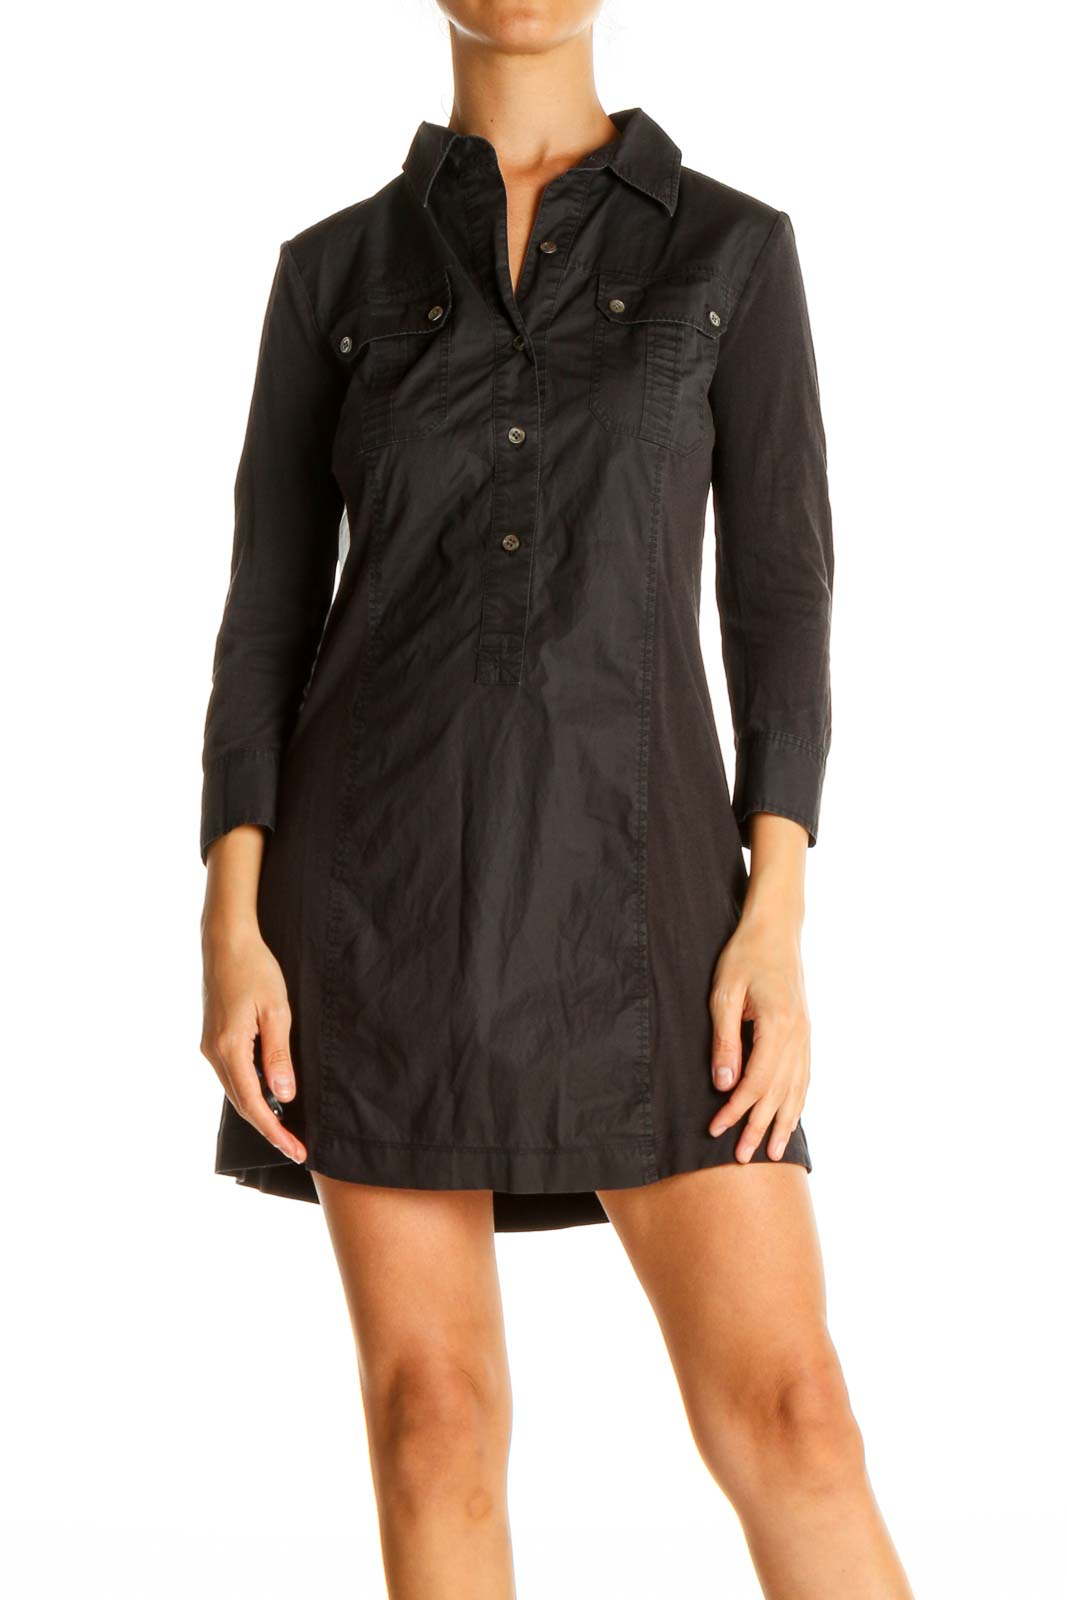 Black Solid Chic Shirt Dress Front